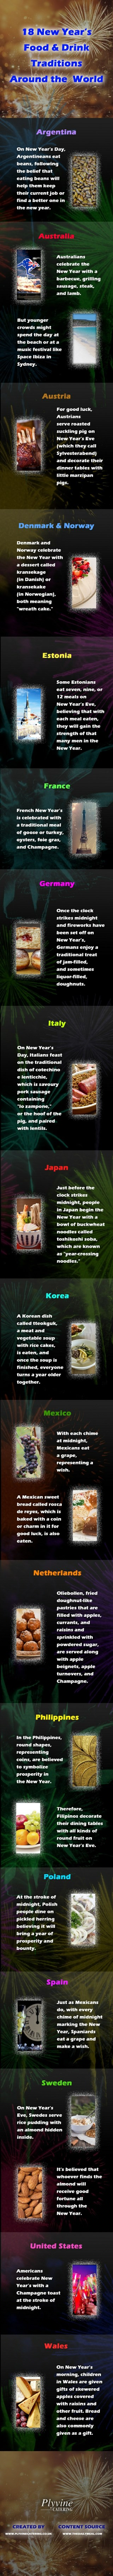 18 New Year's Food and Drink Traditions From Around the World